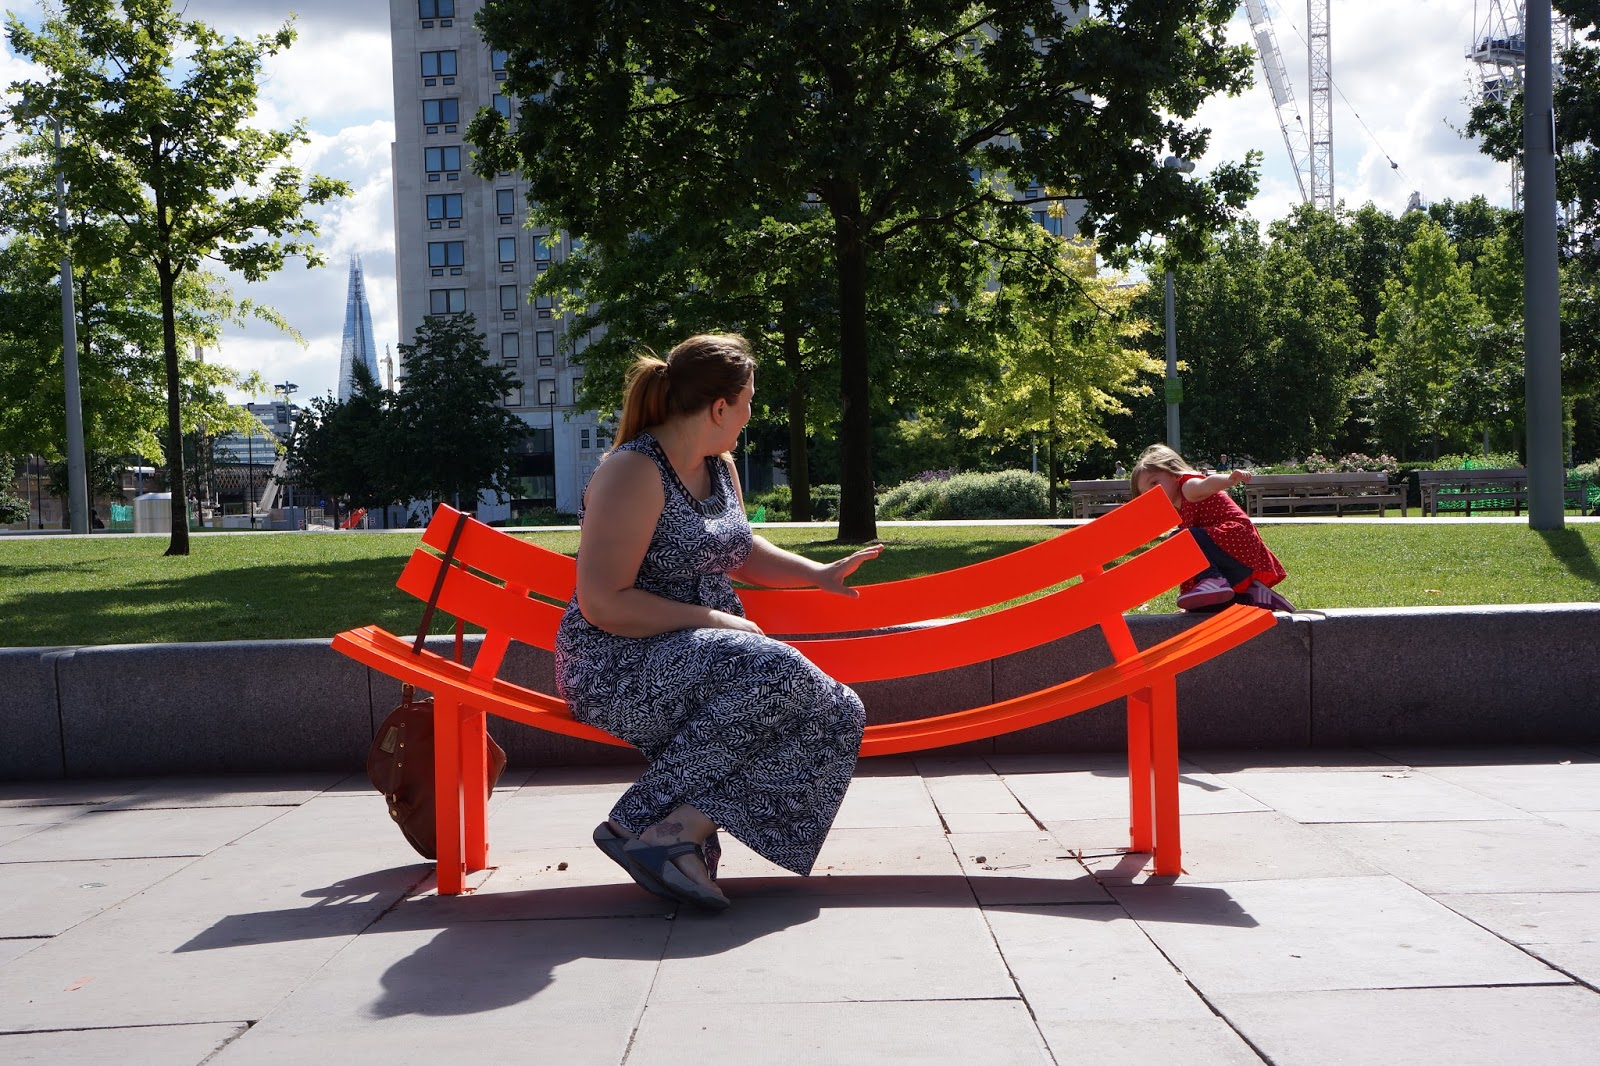 sitting on an artsy bench at south bank